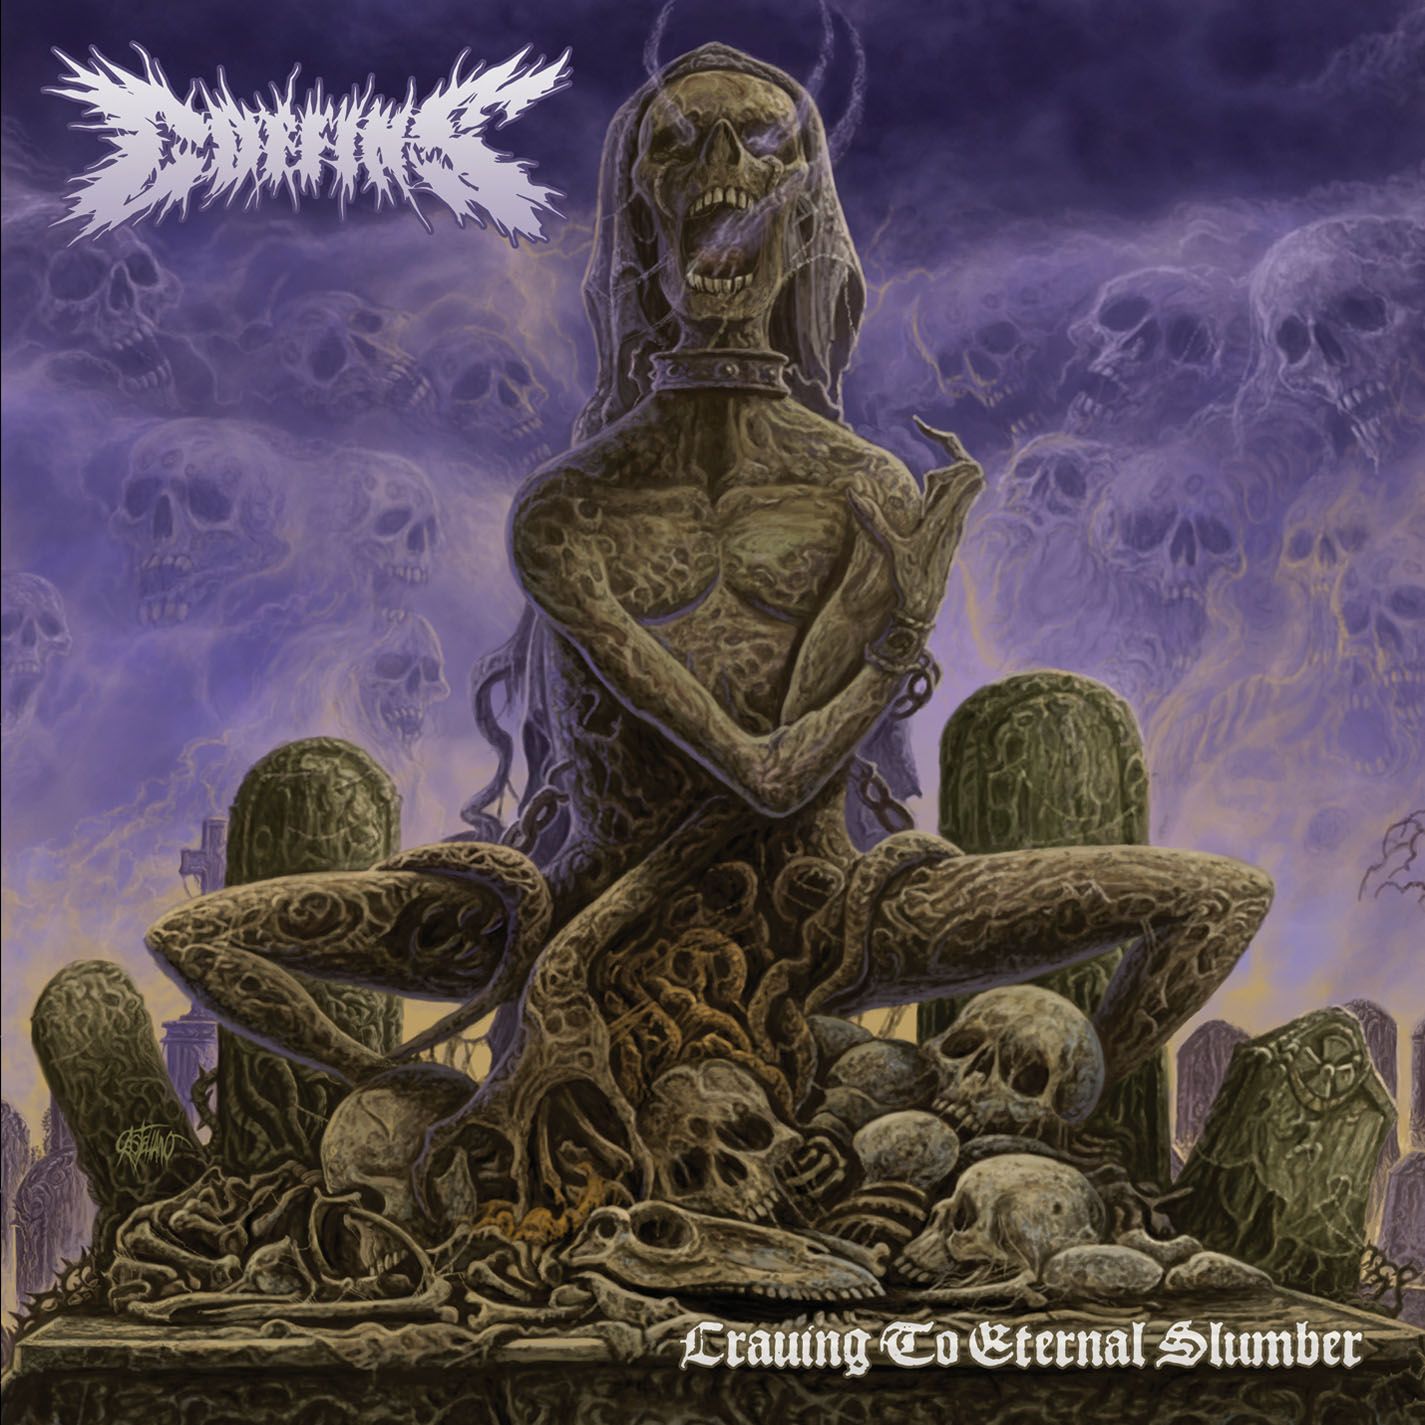 Coffins – Craving to Eternal Slumber Review